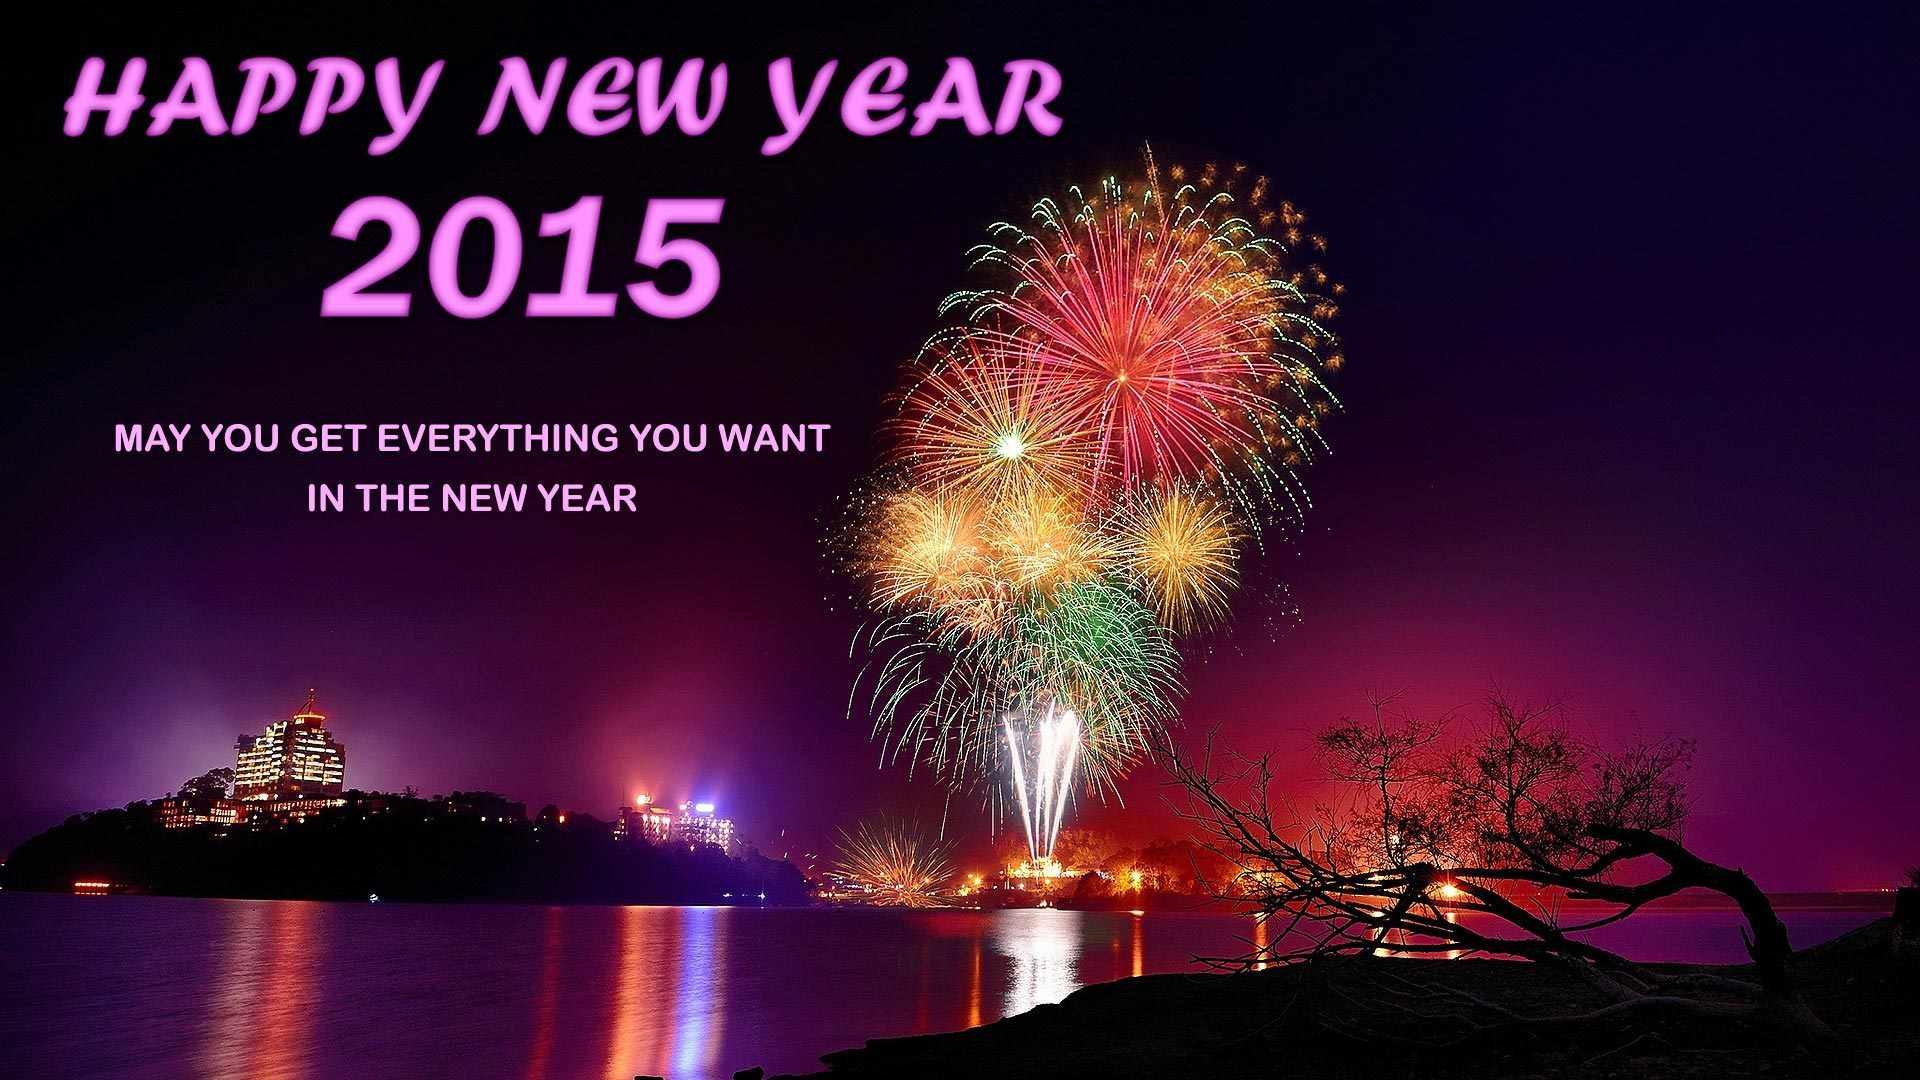 happy new year wishes with pictures 1920x1080